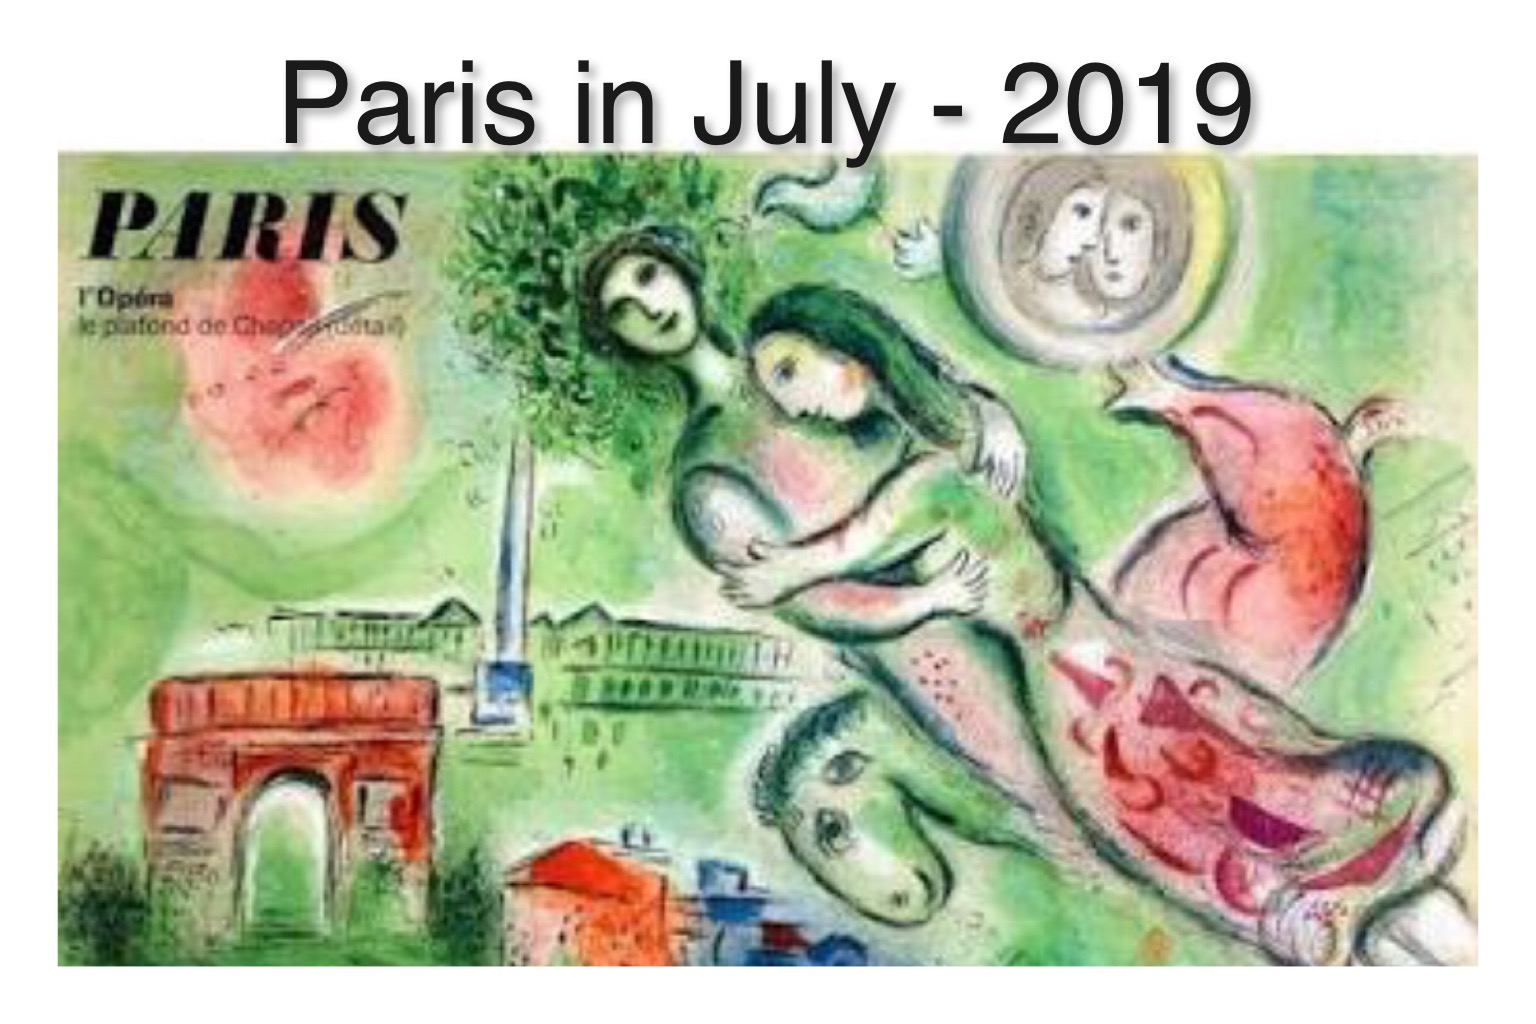 Paris in July - 2019